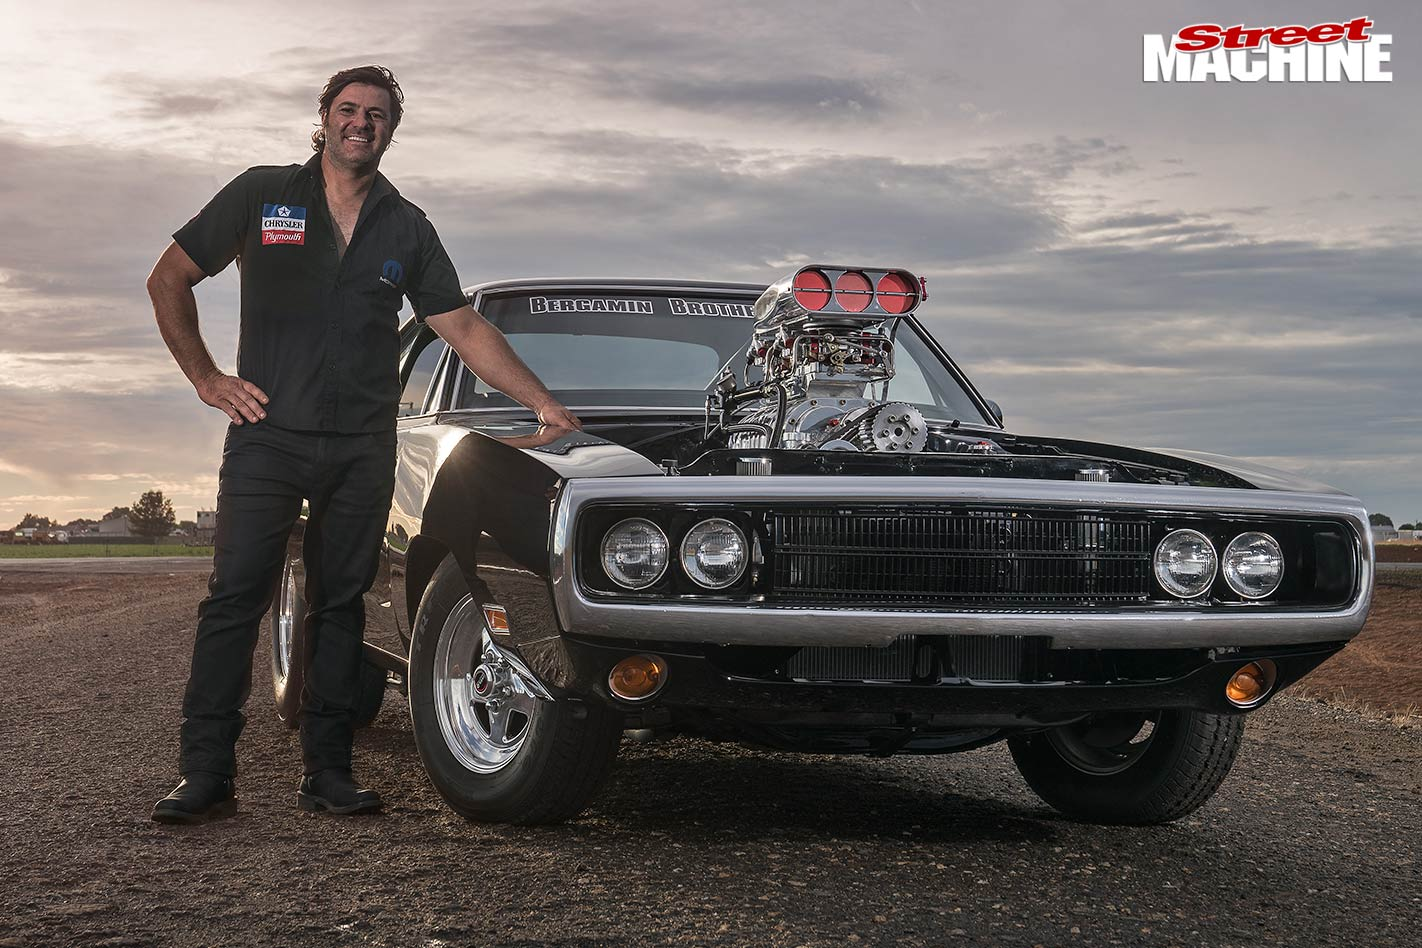 Blown Big Block Fast Amp Furious Dodge Charger Tribute